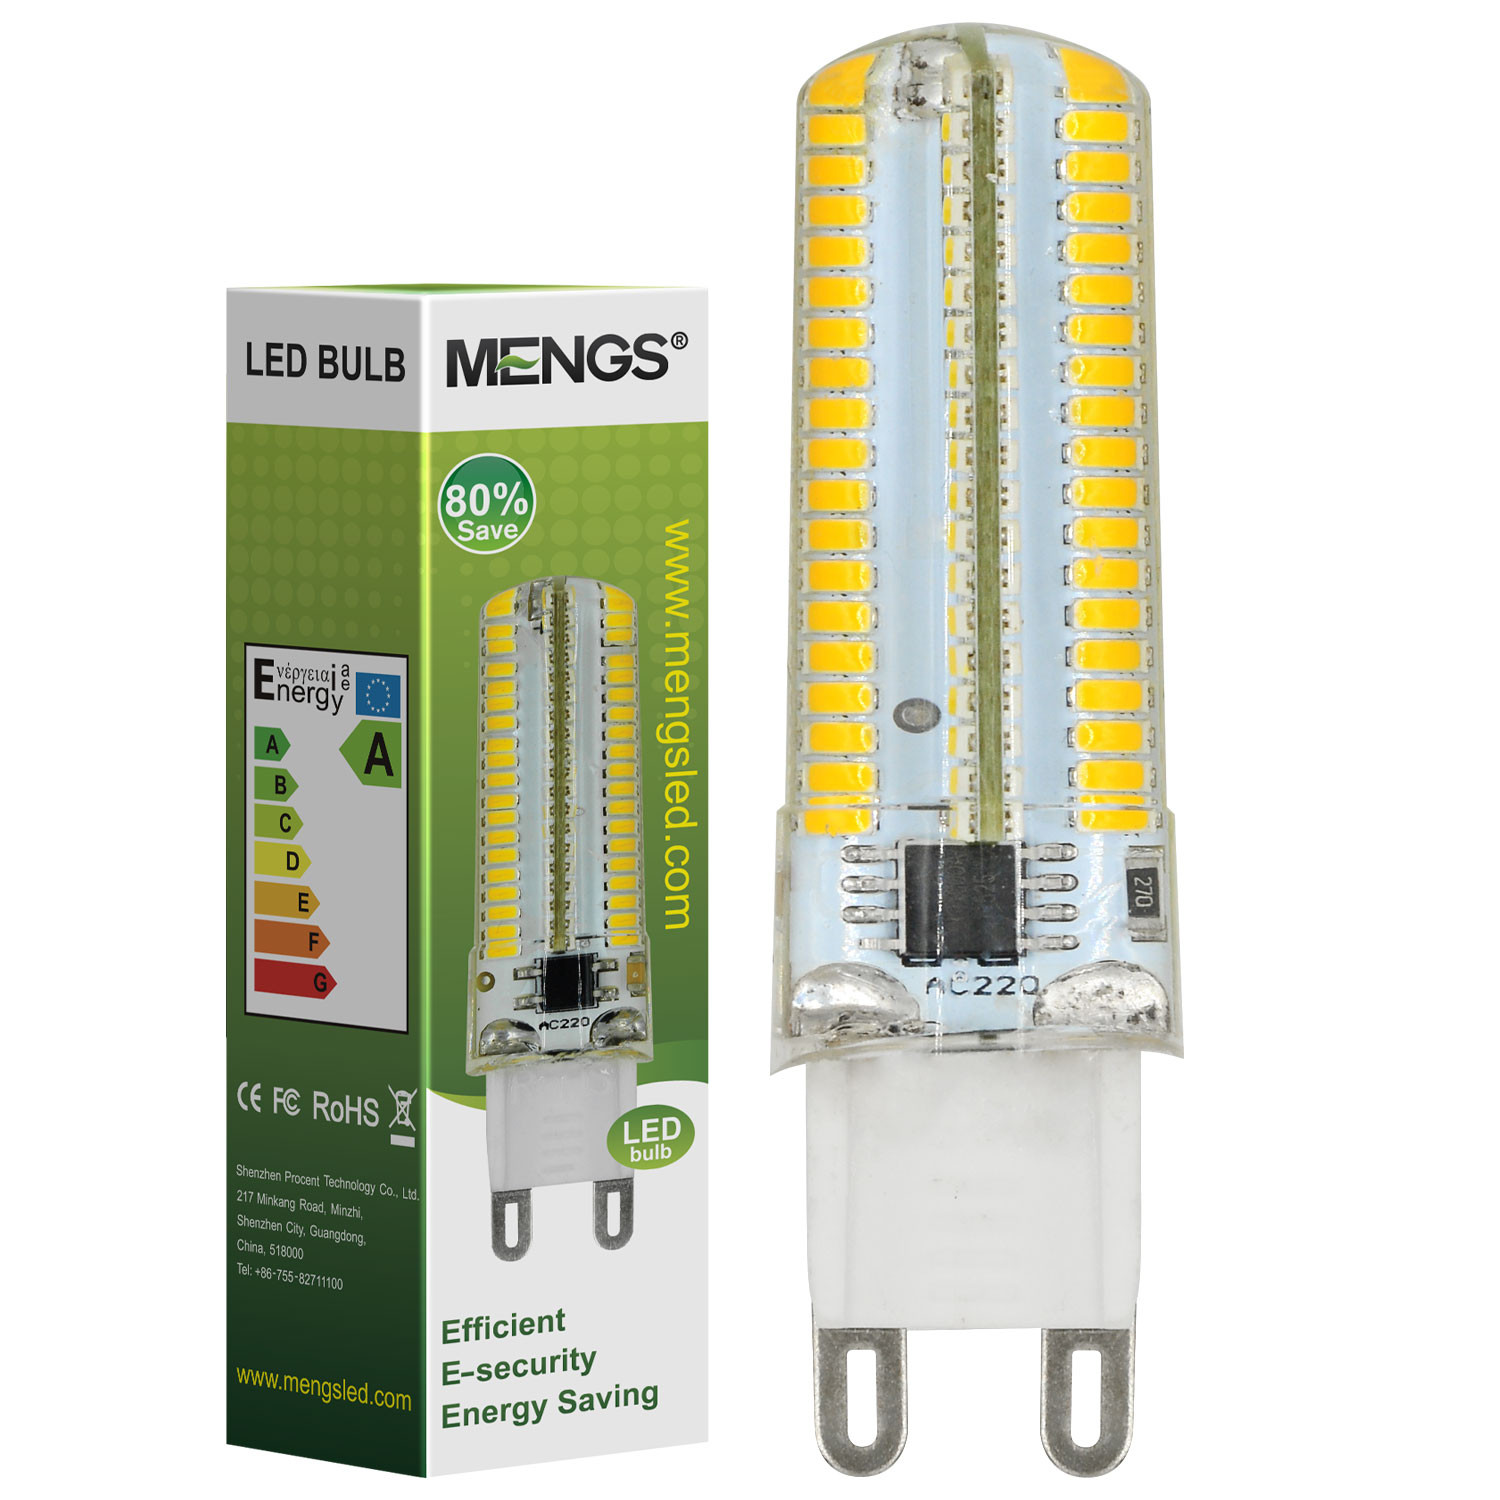 MENGS® G9 7W LED Light 152x 3014 SMD LEDs LED Lamp in Warm White Energy-Saving Light